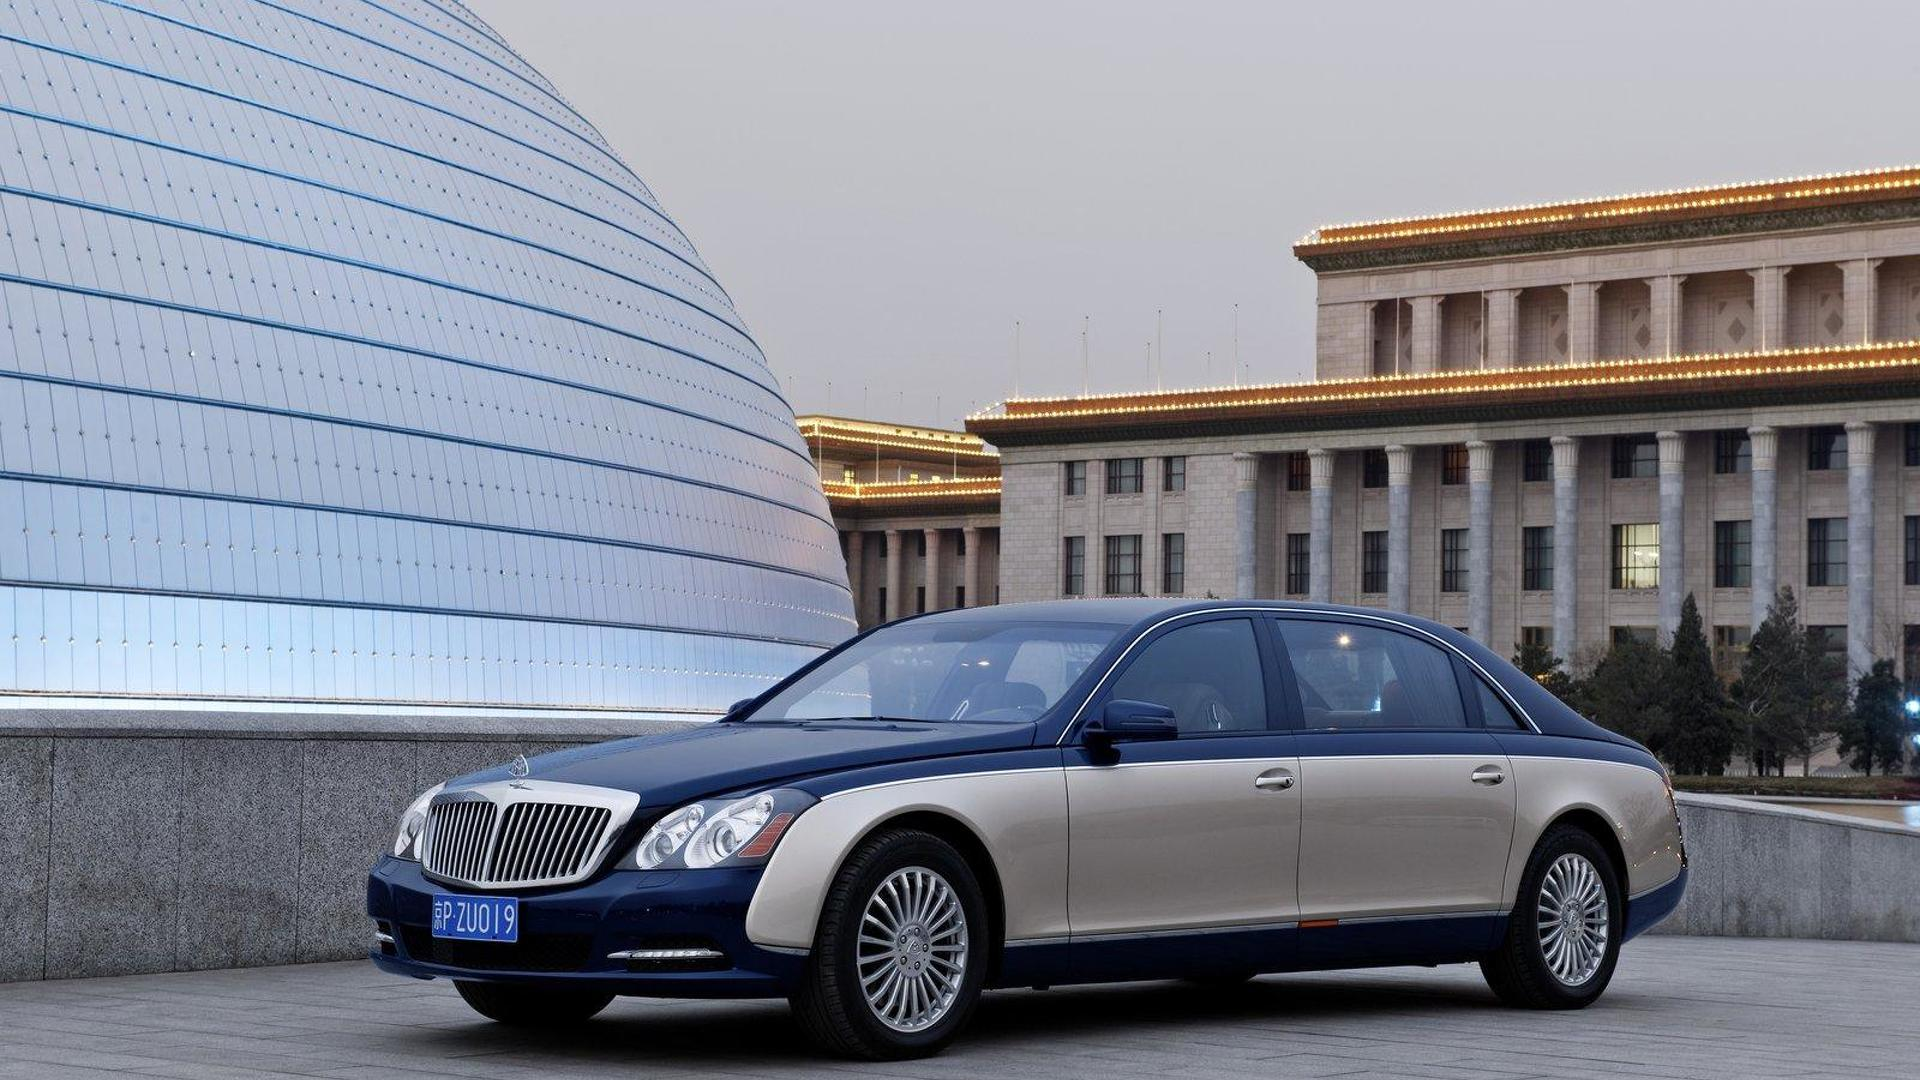 Aston Martin & Maybach tie-up detailed - rumors